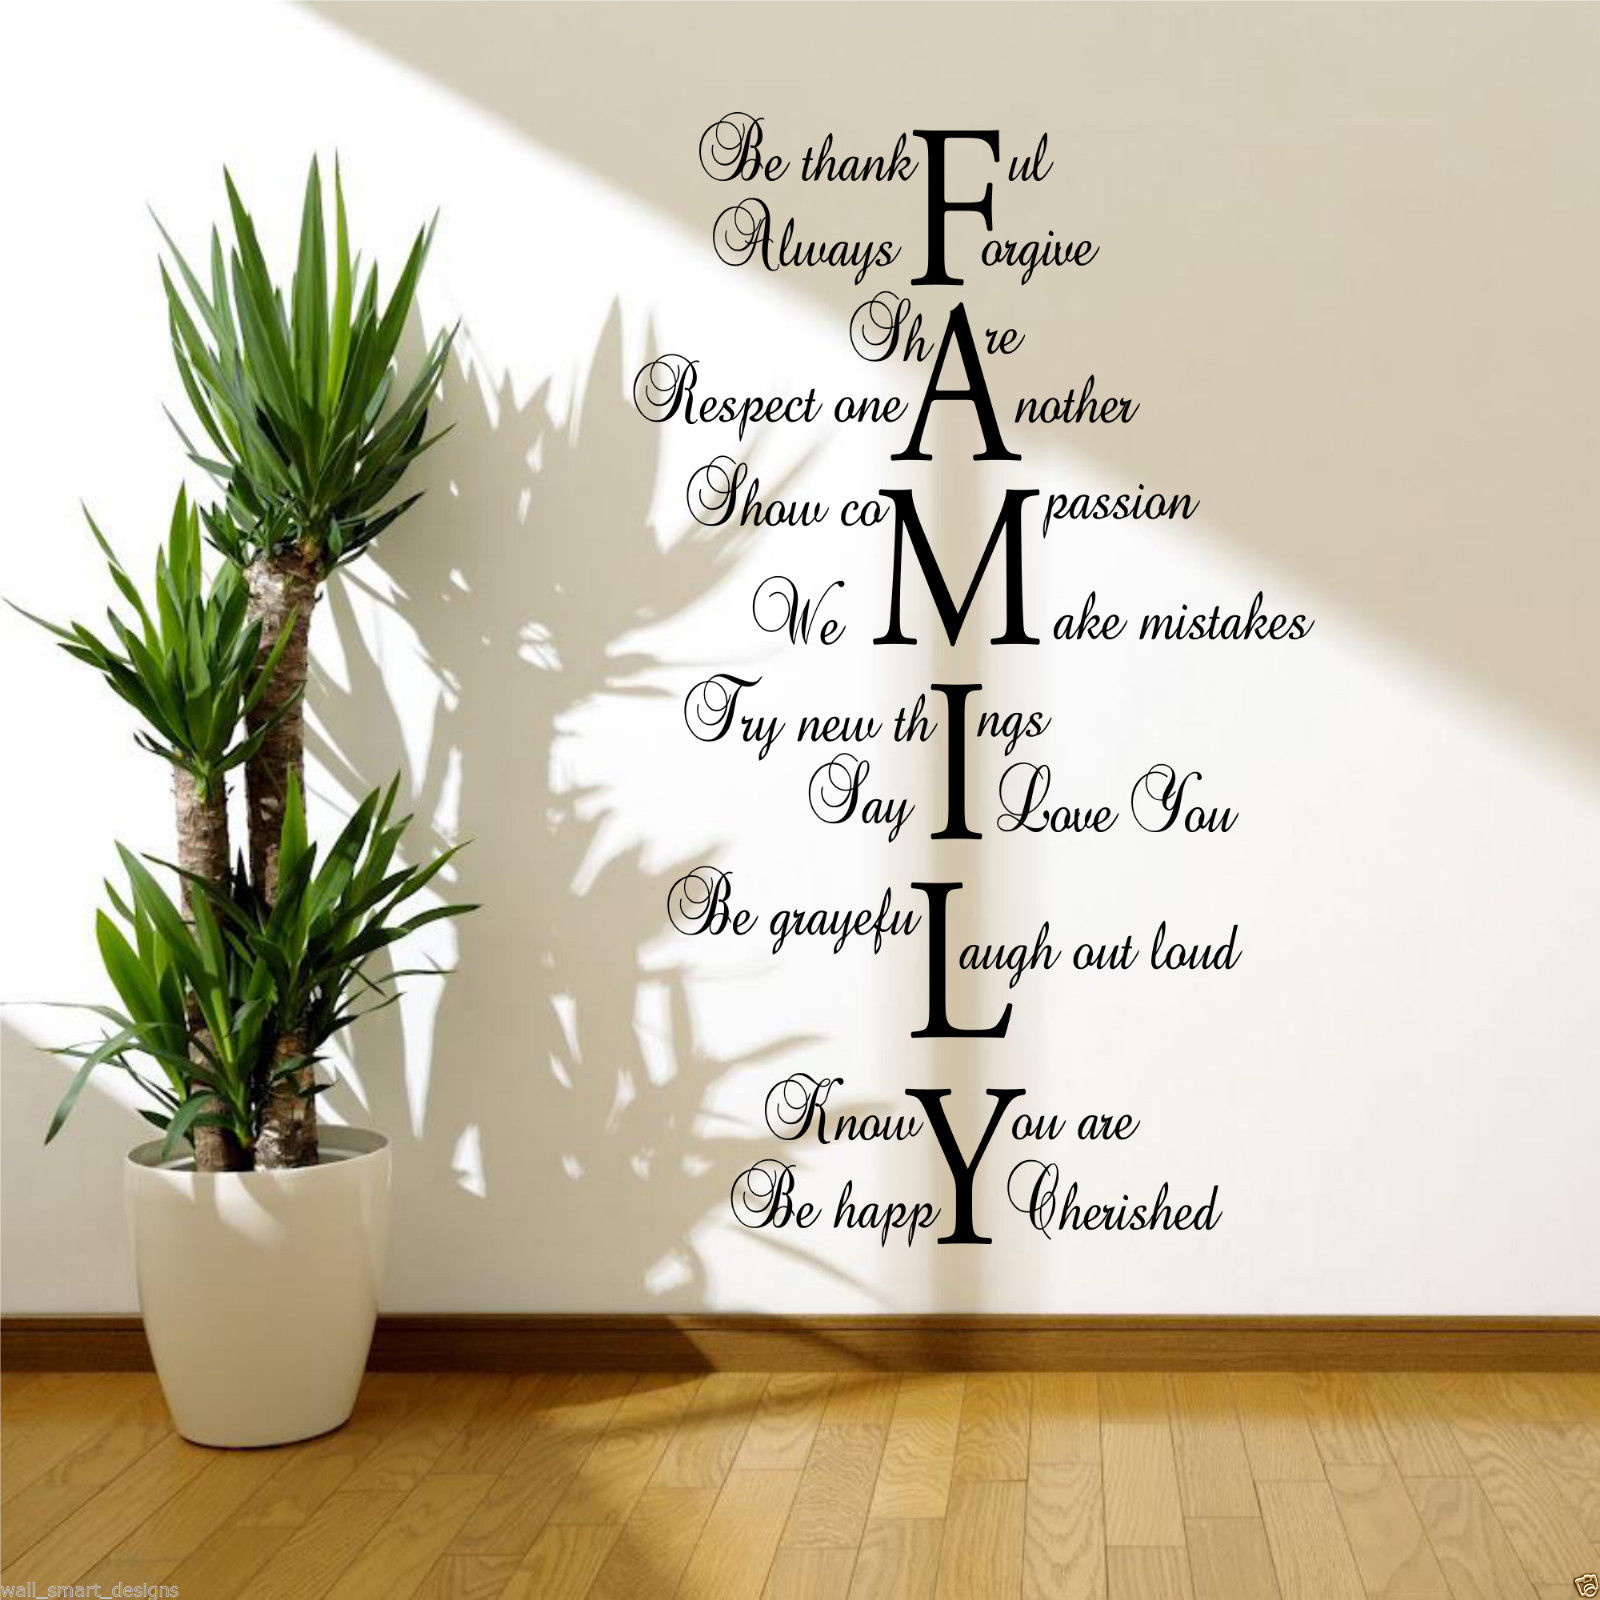 Family love life wall art sticker quote room decal mural for Decoration quotes sayings